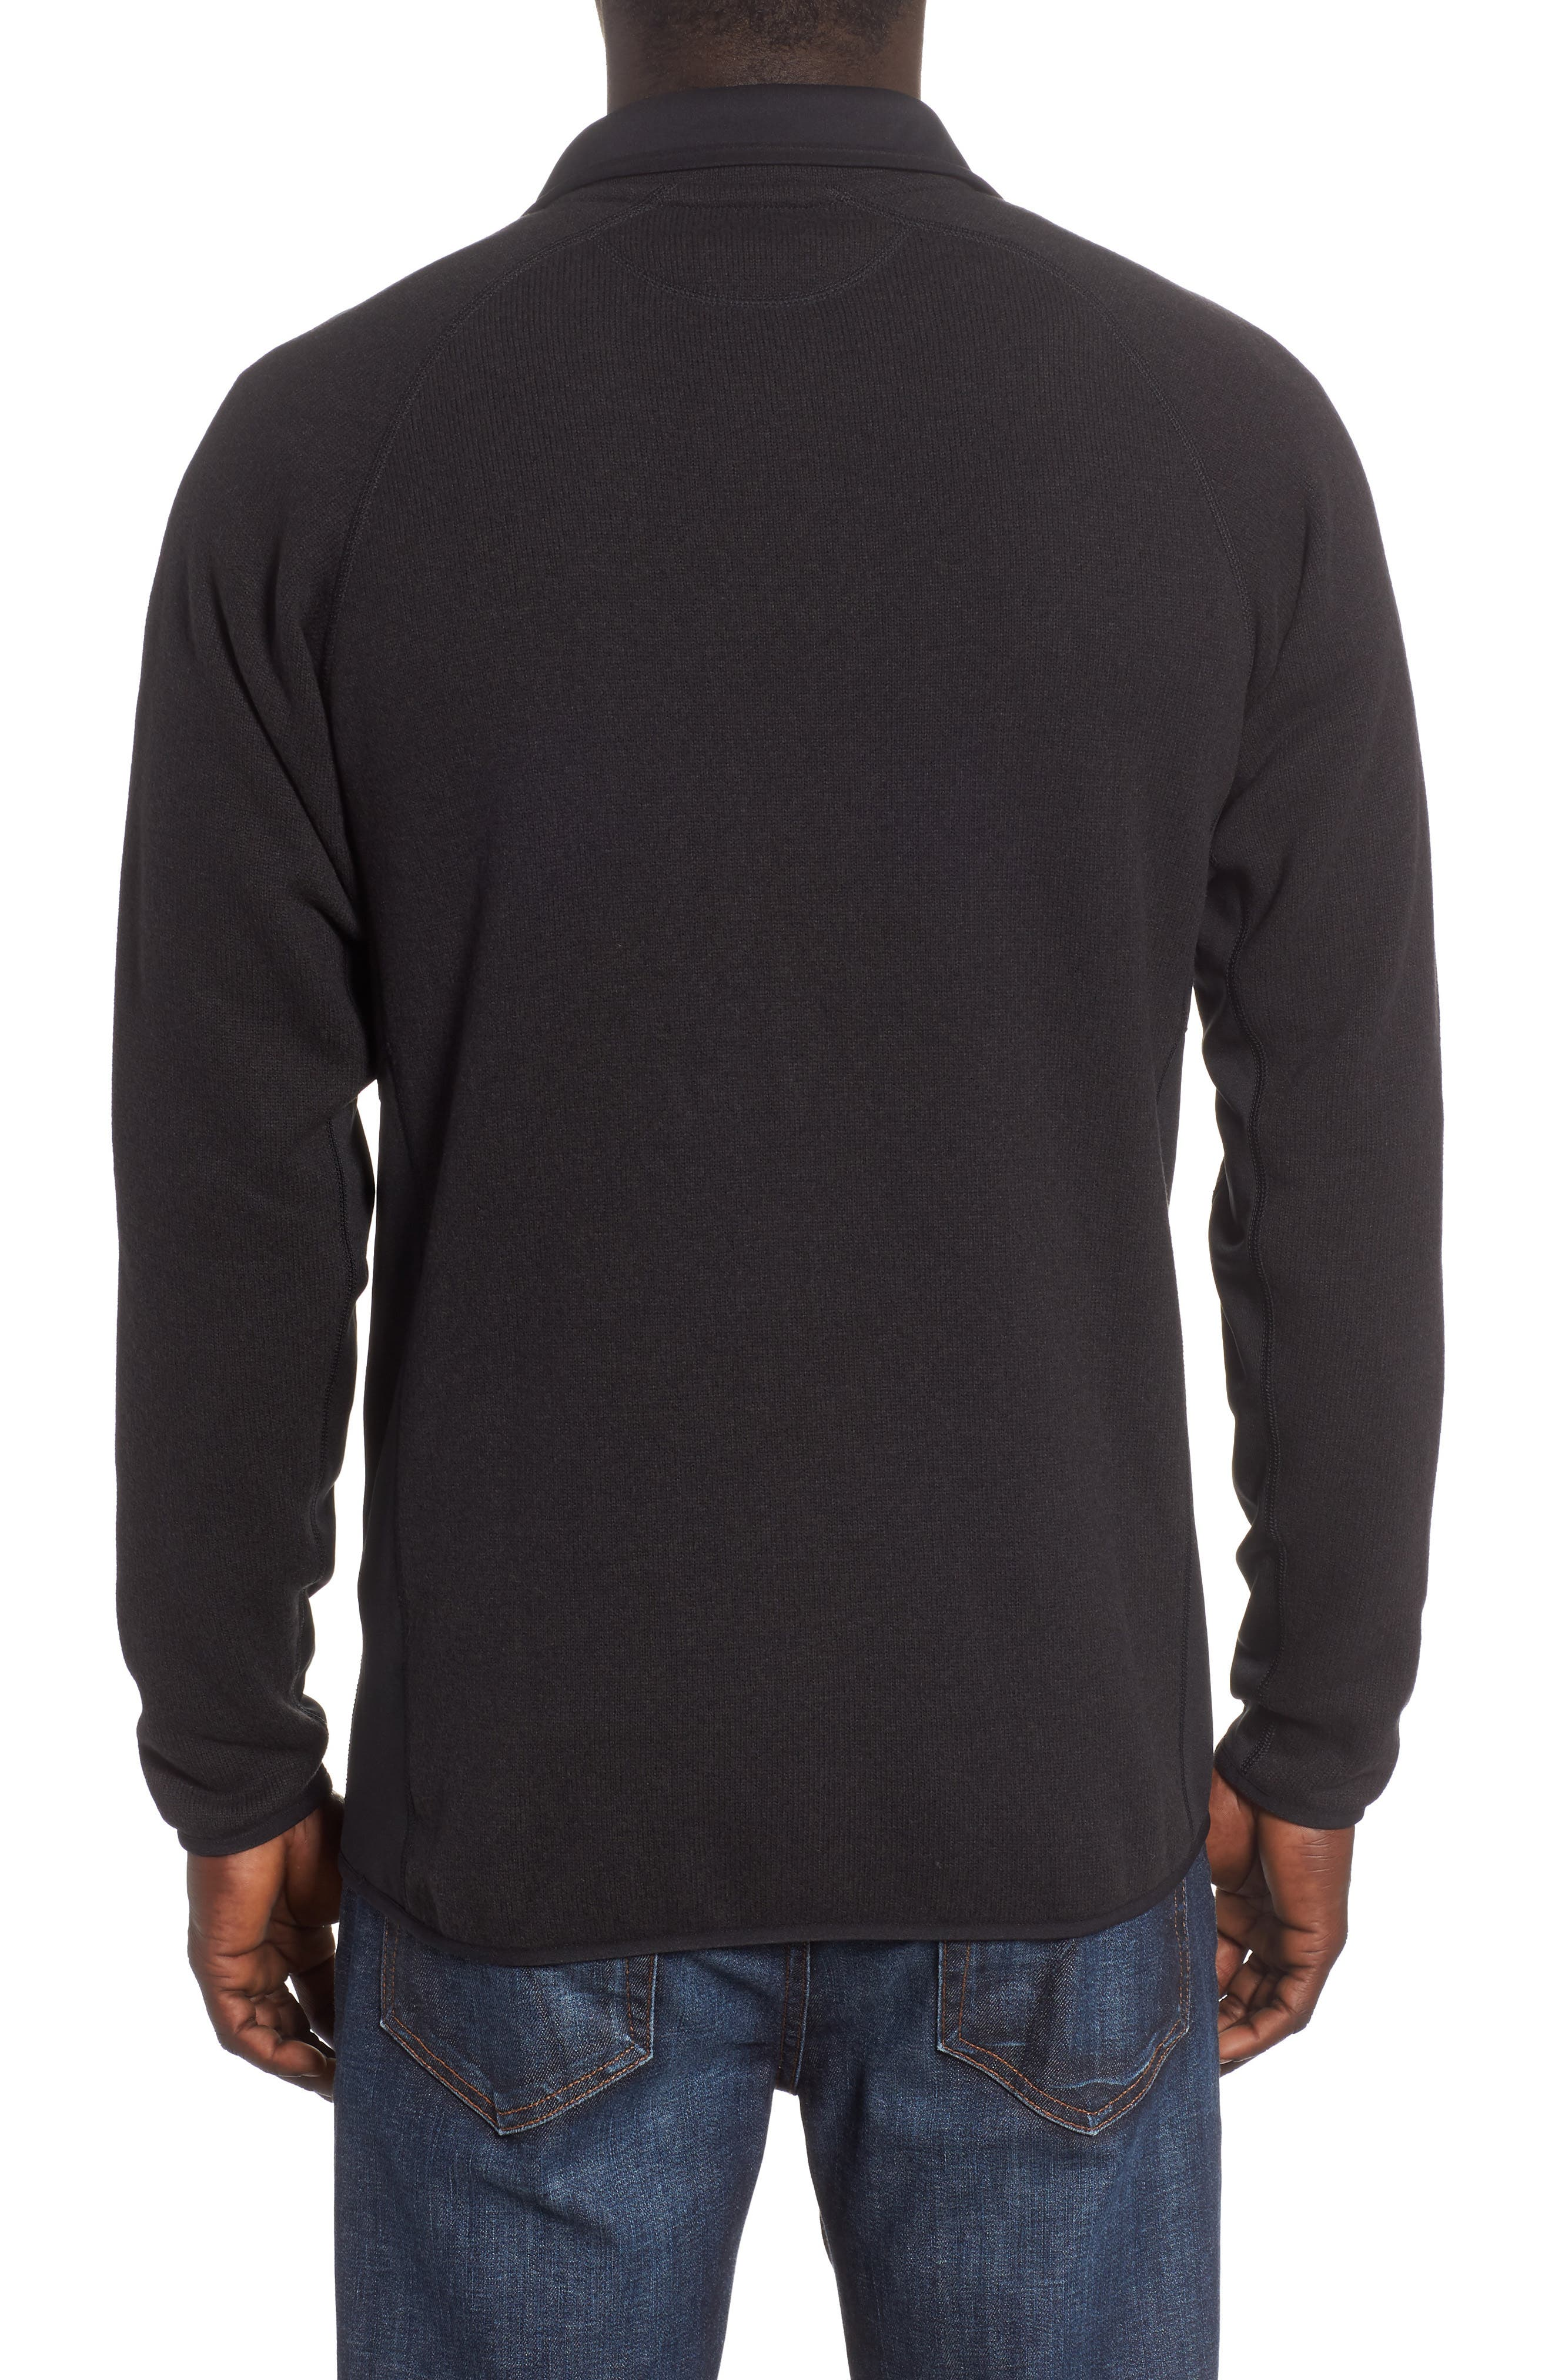 Better Sweater<sup>®</sup> Performance Slim Quarter-Zip Pullover,                             Alternate thumbnail 2, color,                             BLACK